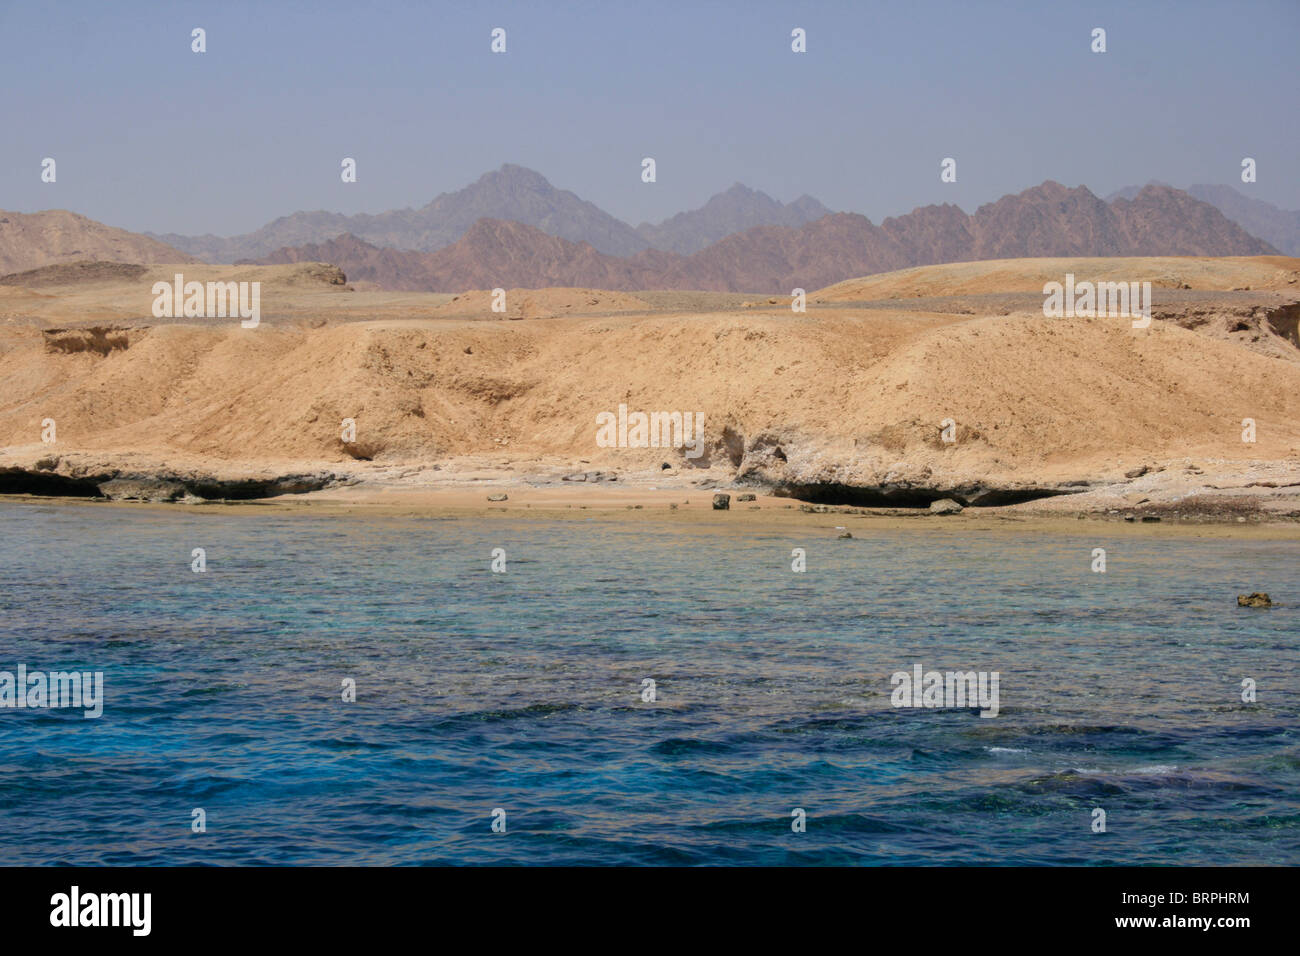 The Red Sea and arid landscape of the Sinai Peninsula, Ras Mohammed, Egypt - Stock Image